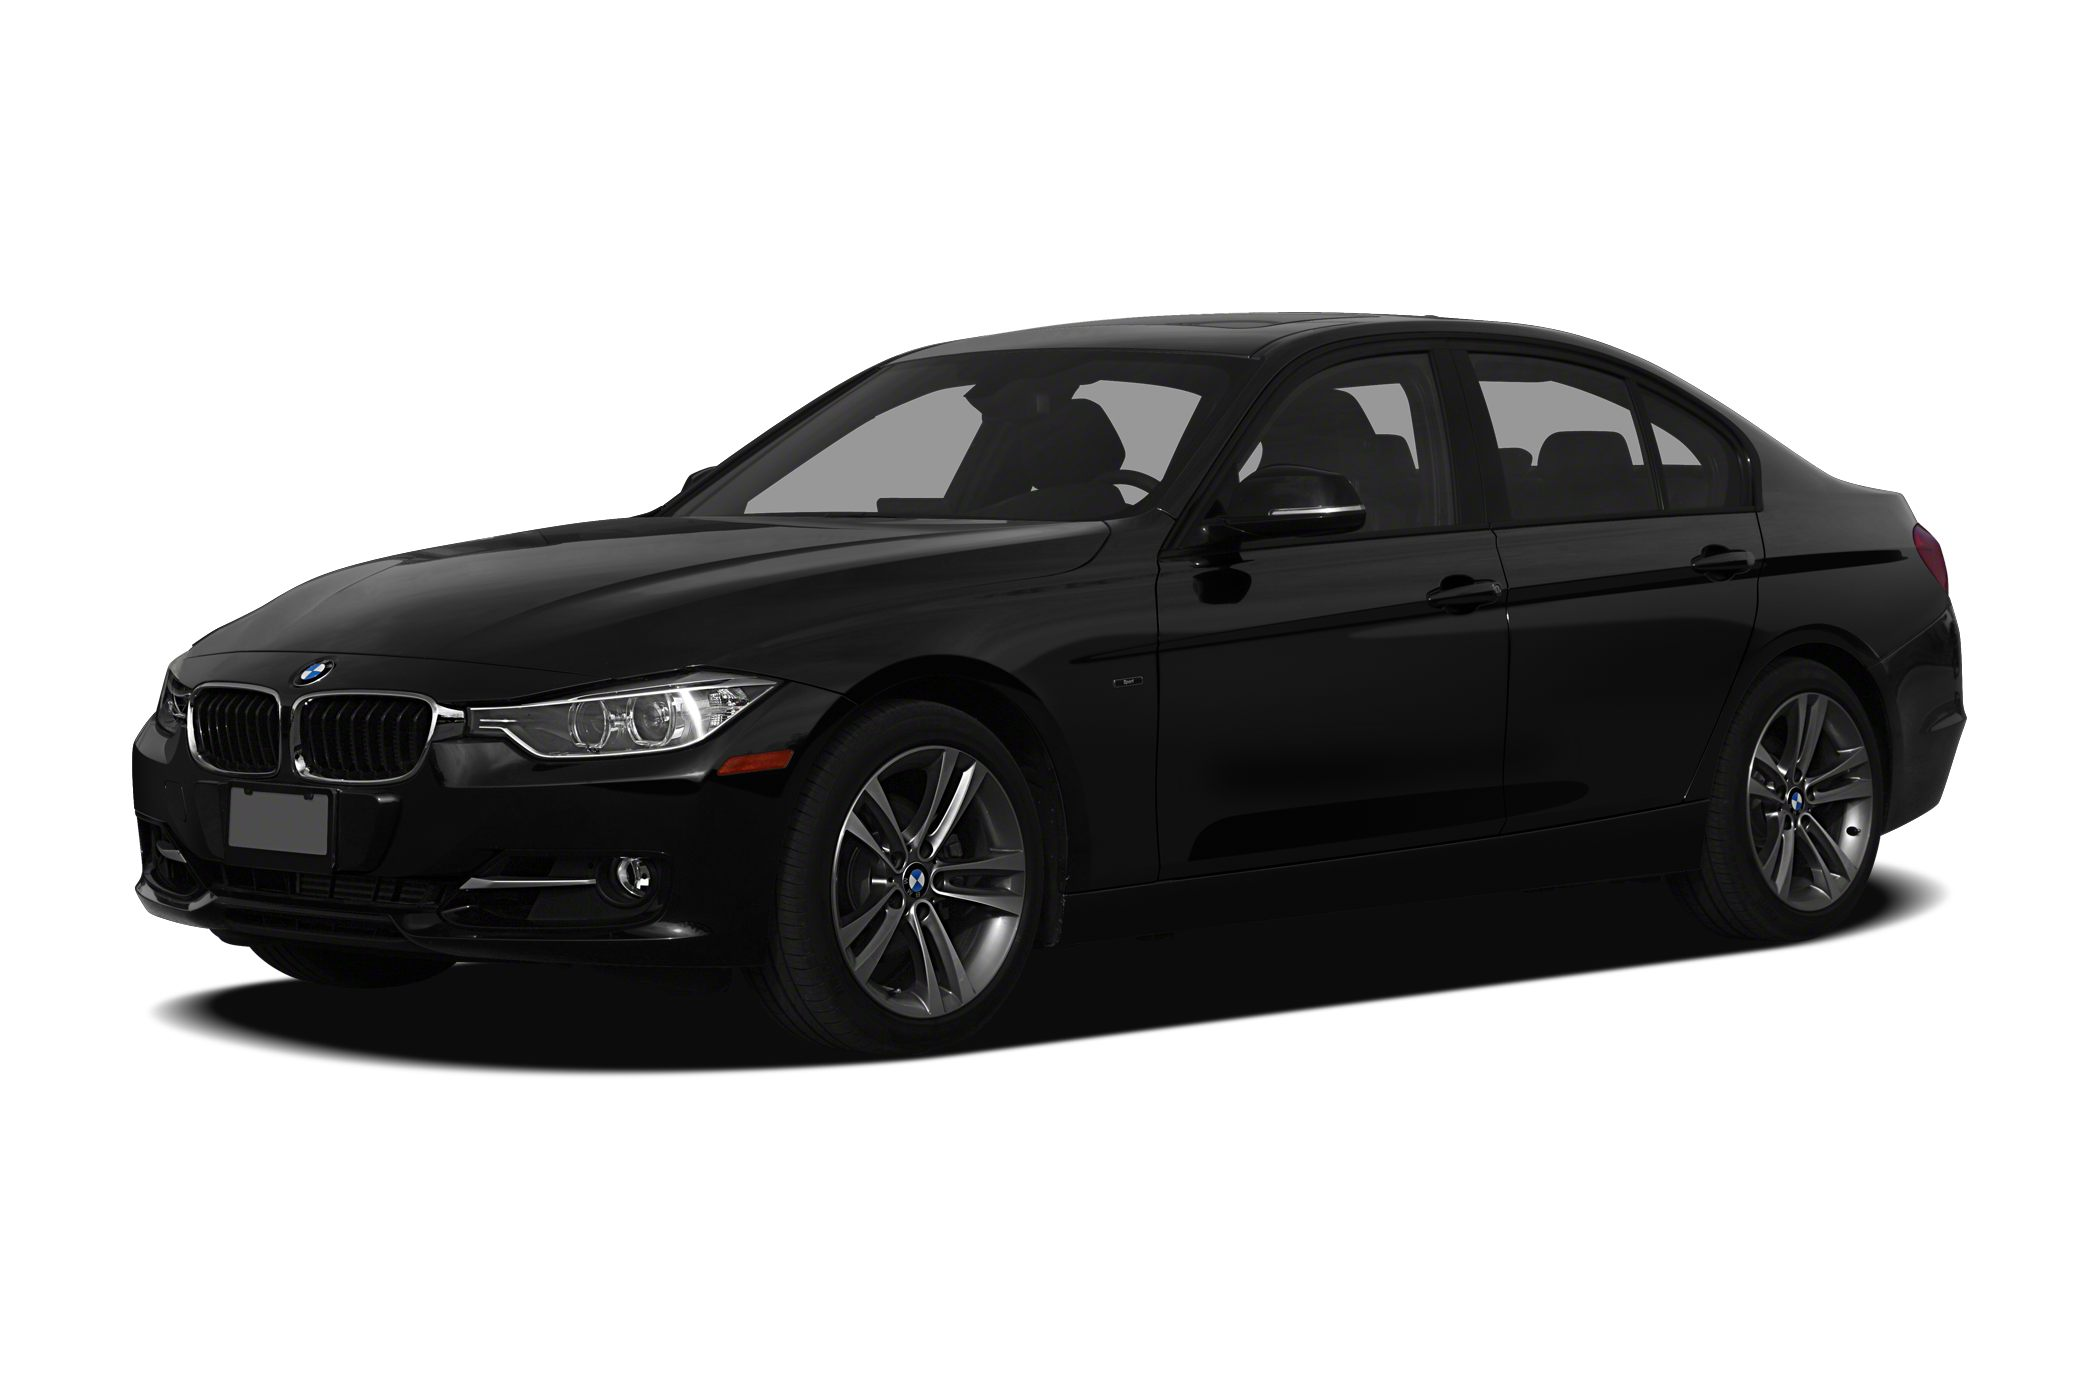 2013 BMW 320